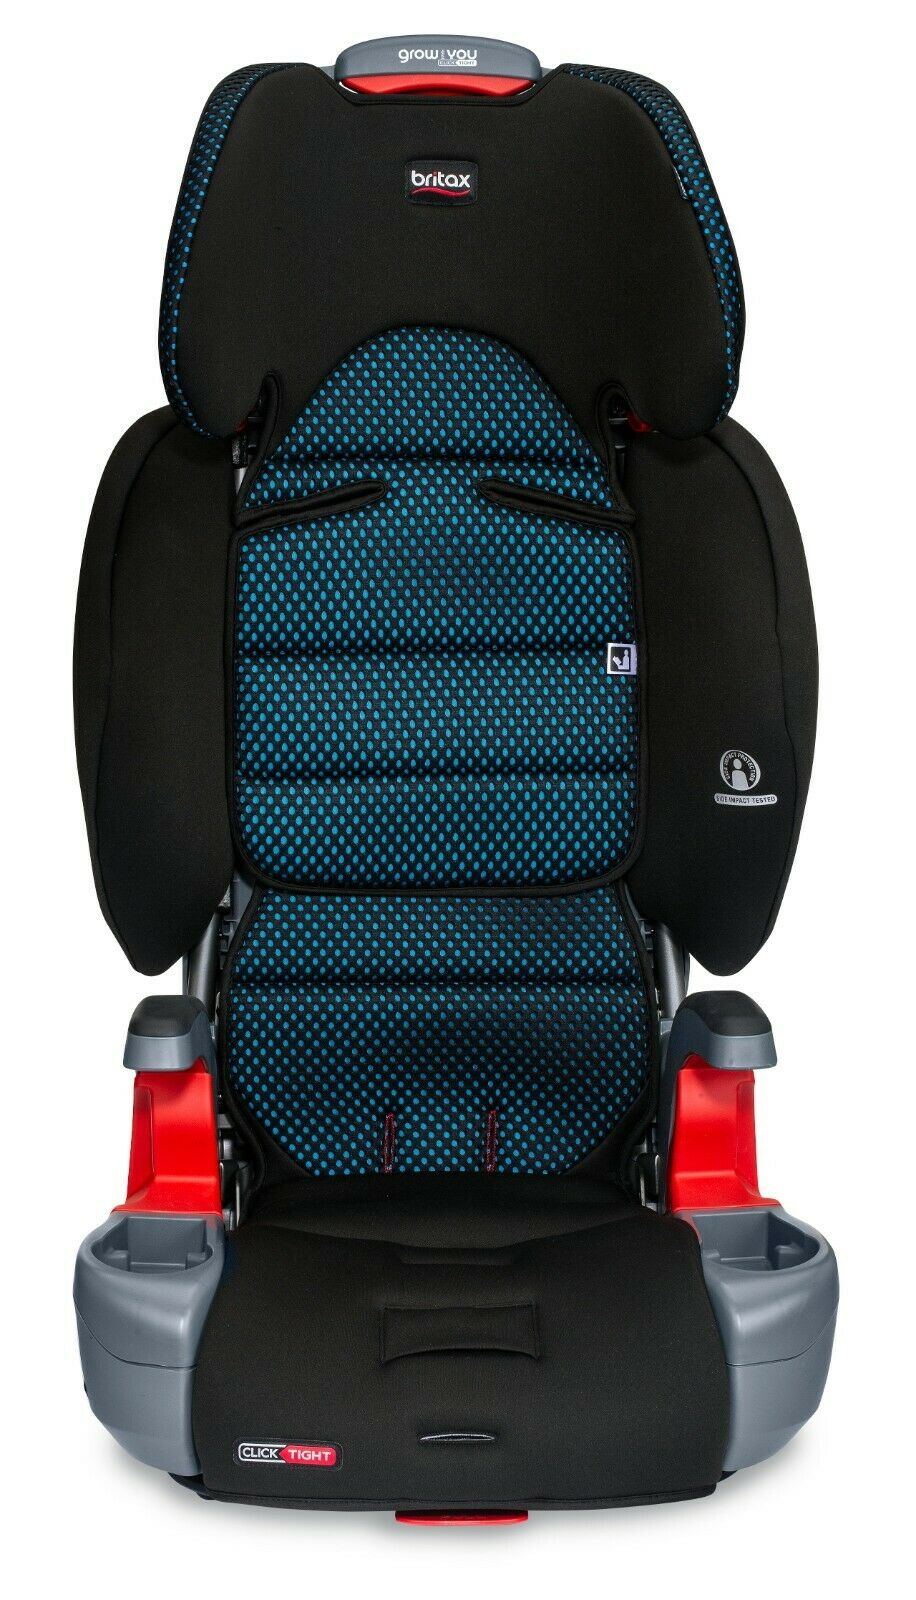 Britax Grow With You Plus ClickTight Booster Car Seat - Cool Flow Teal